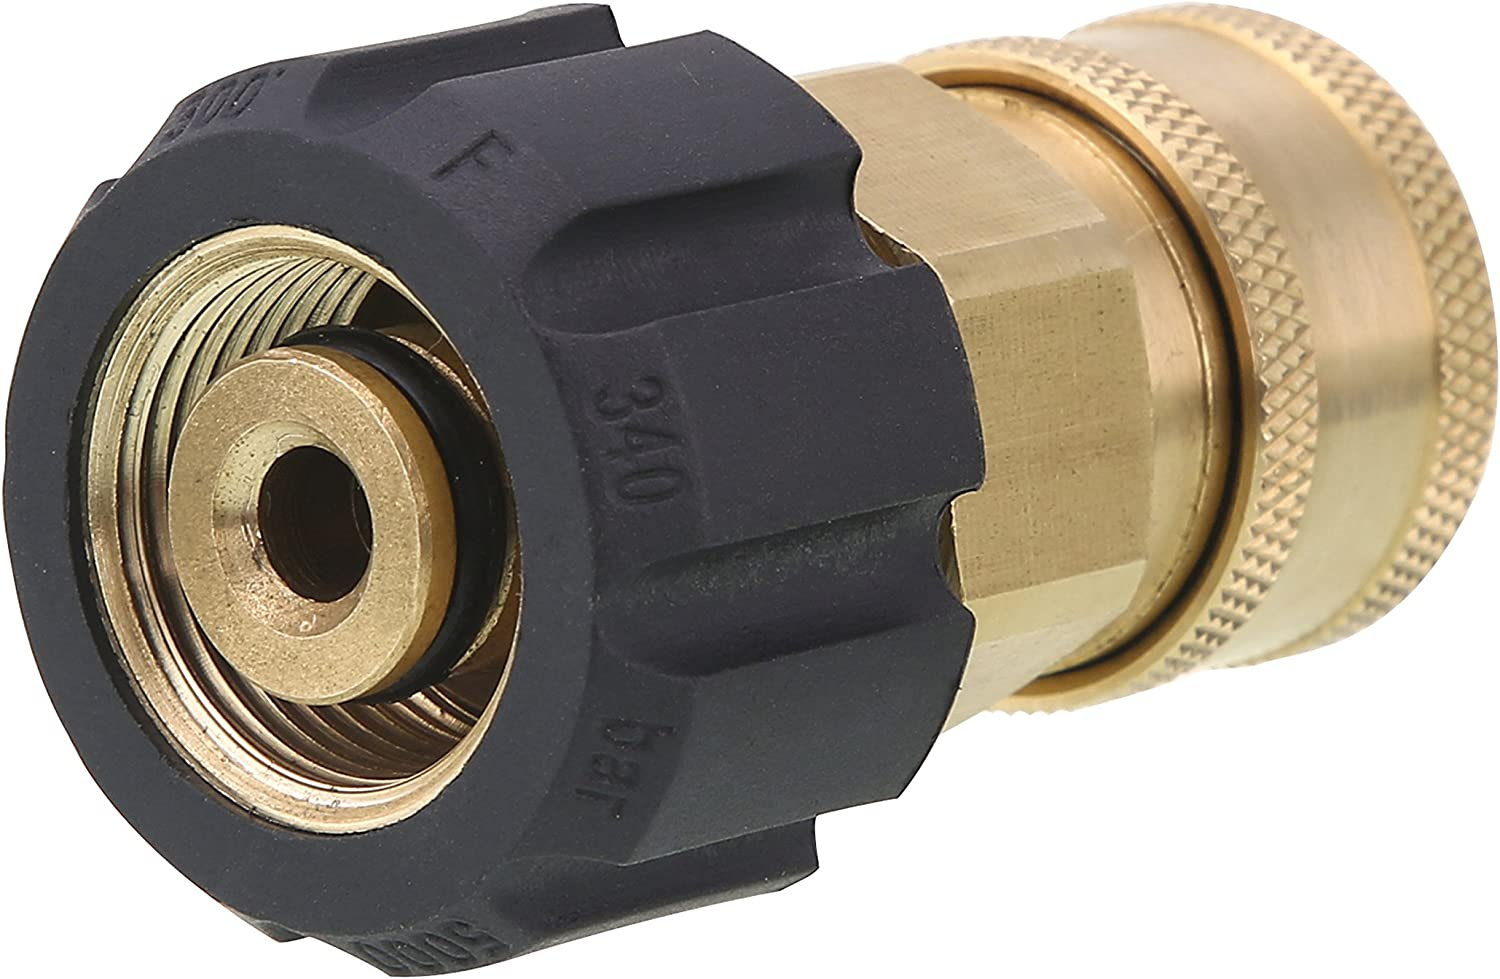 Tool Daily Quick Connect Socket for Pressure Washer Gun and Hose, 3/8 Inch Socket to M22 14mm Metric Swivel, 5000 PSI